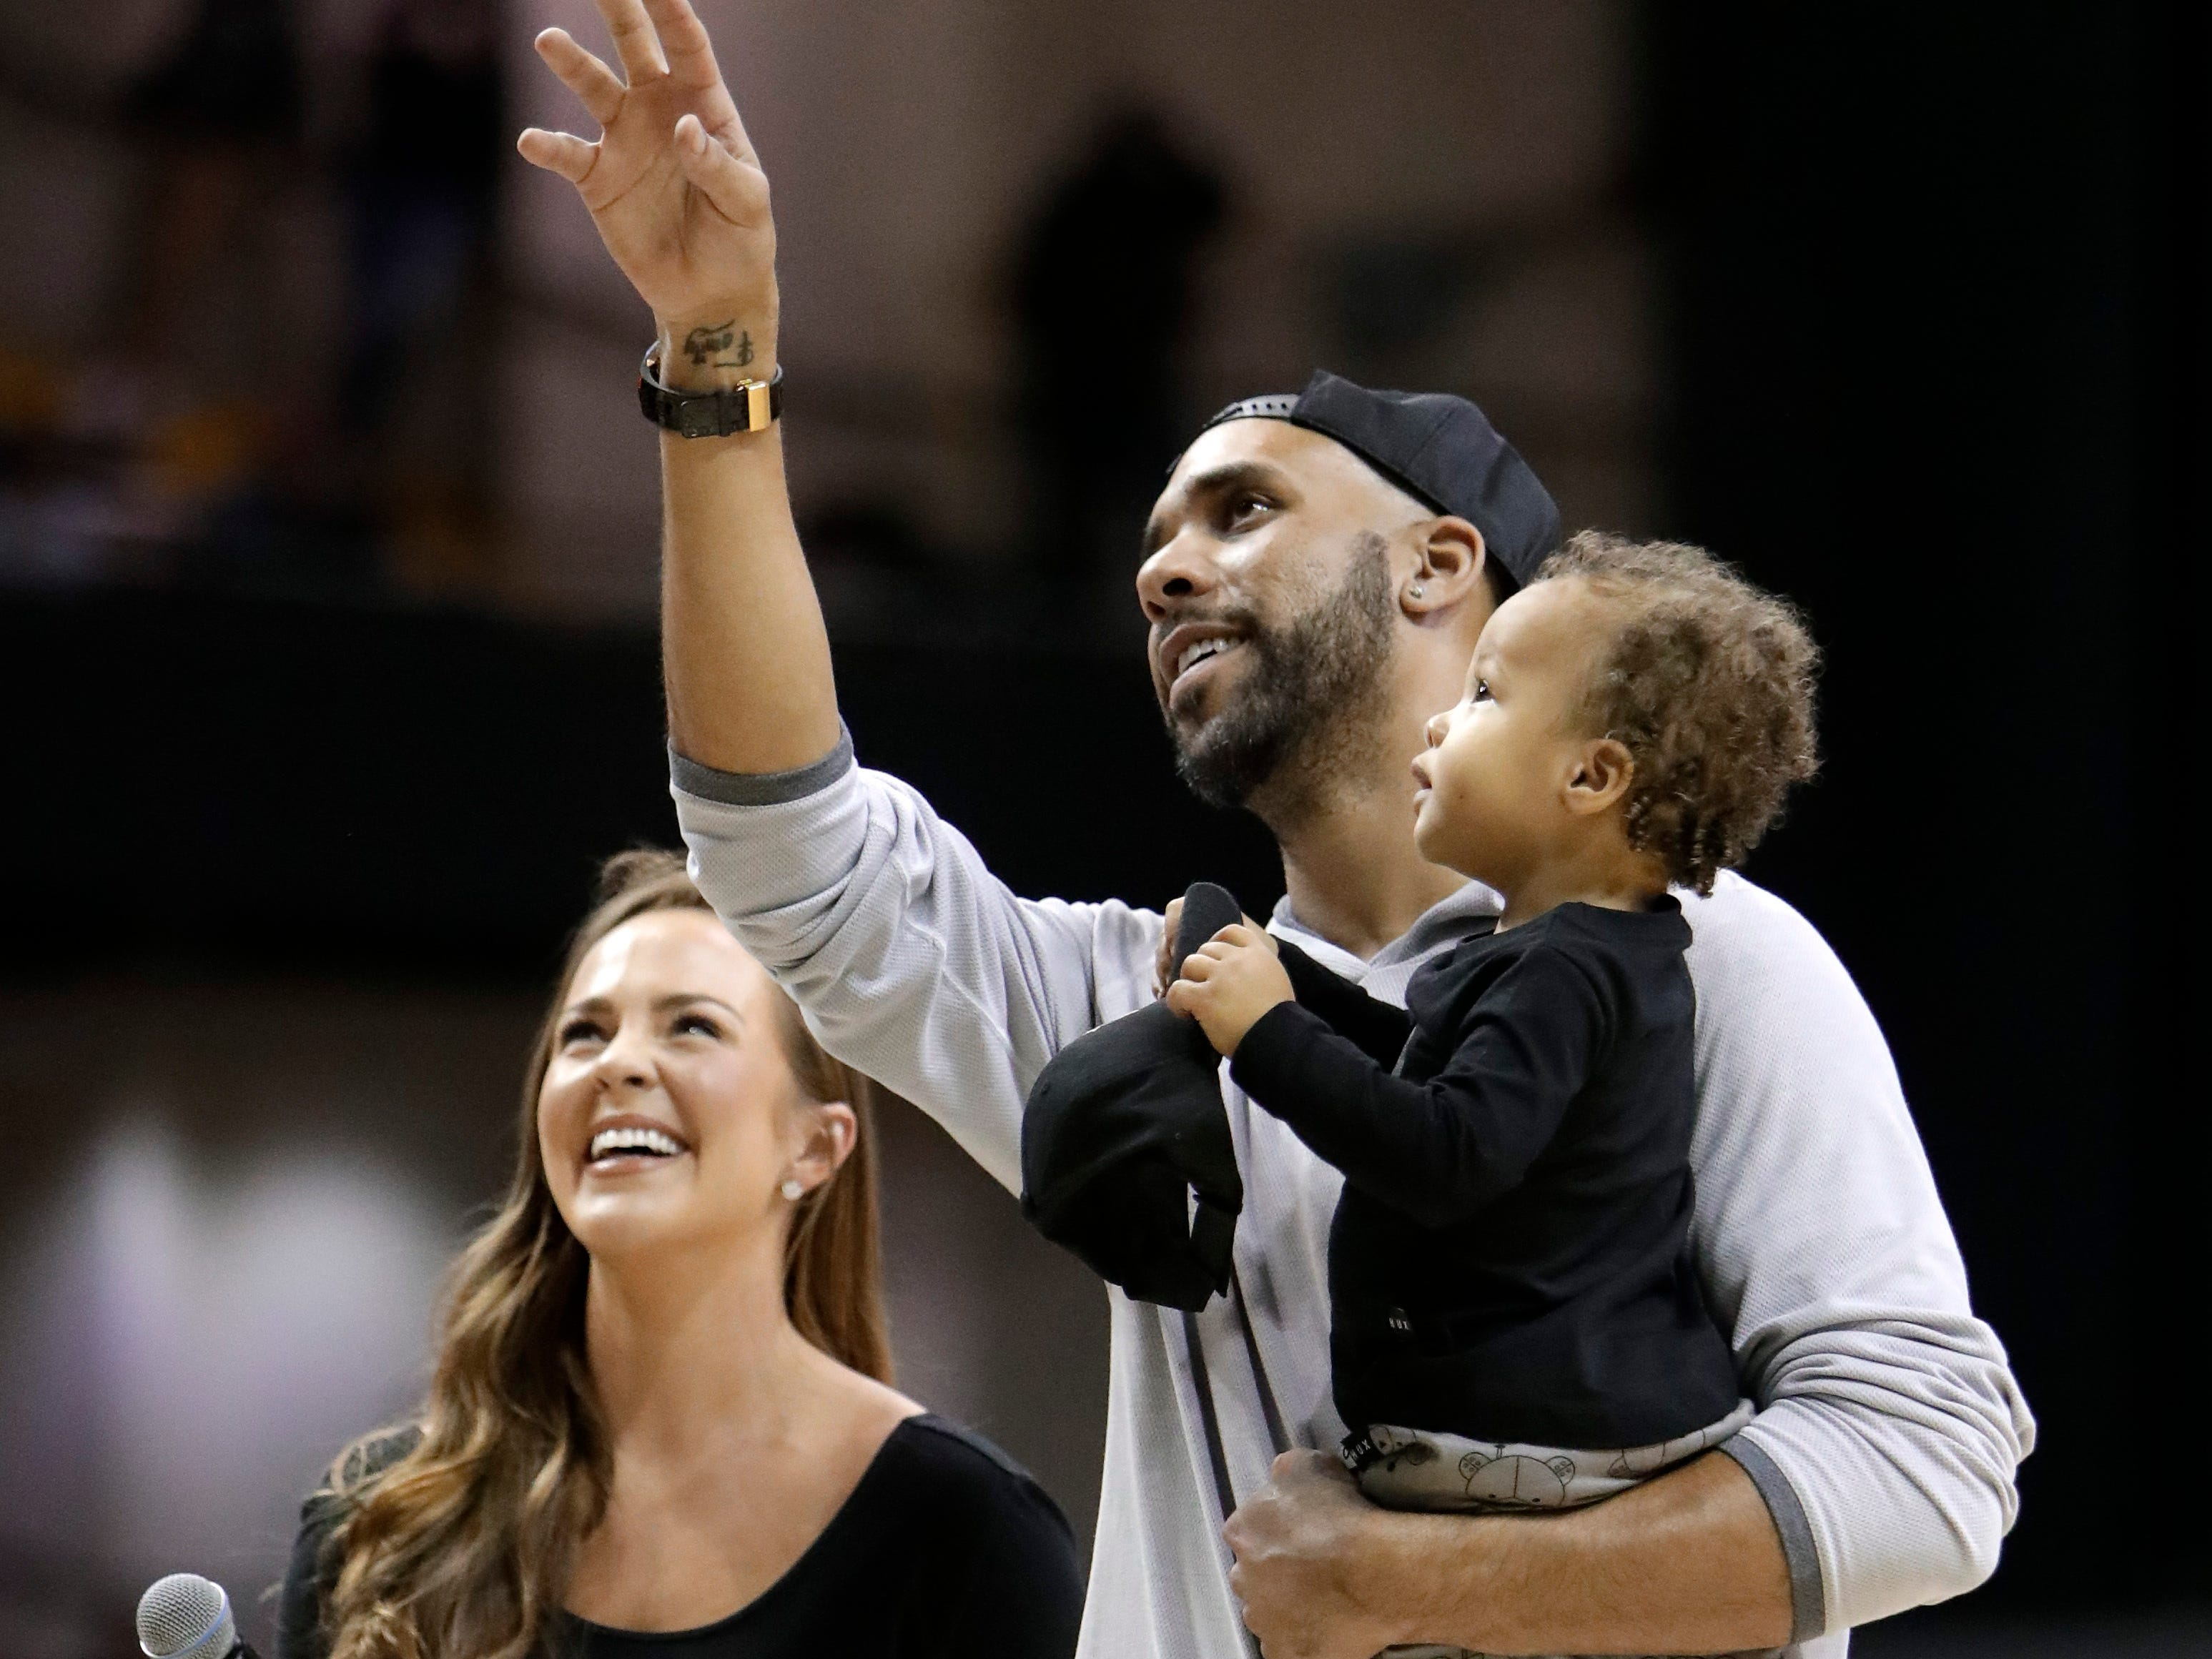 Boston Red Sox pitcher David Price holds his son, son, Xavier, as he talks to the crowd during a game between Vanderbilt and Mississippi State on Jan. 19, 2019.